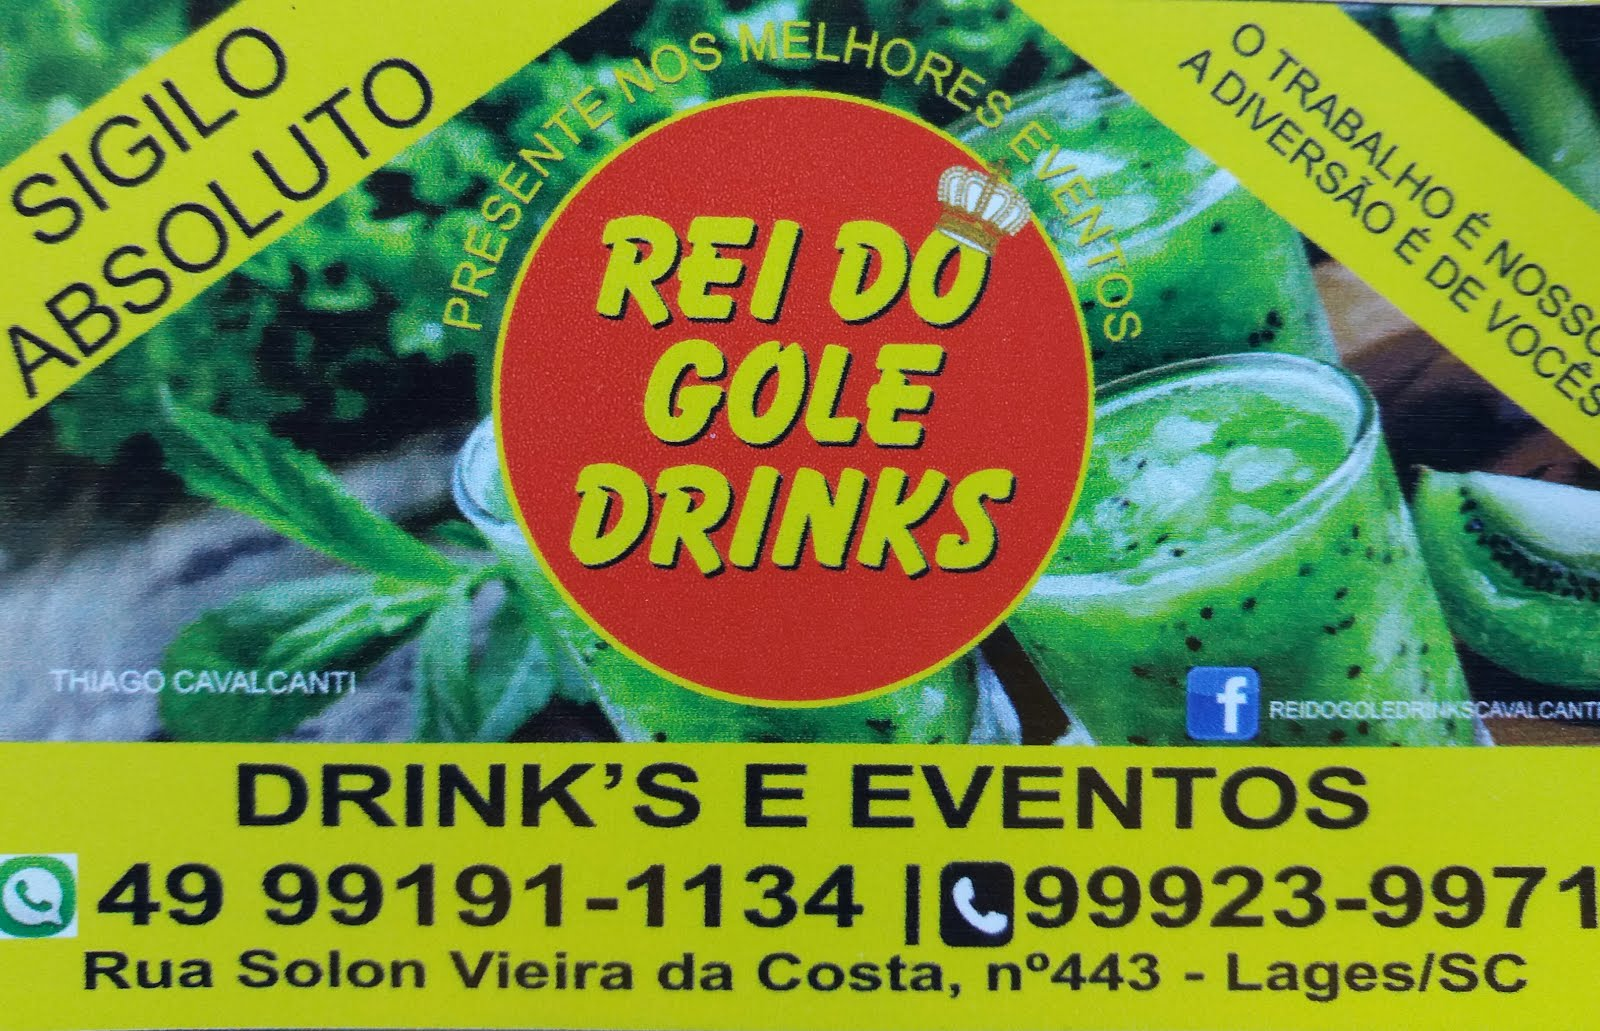 Rei do Gole Eventos